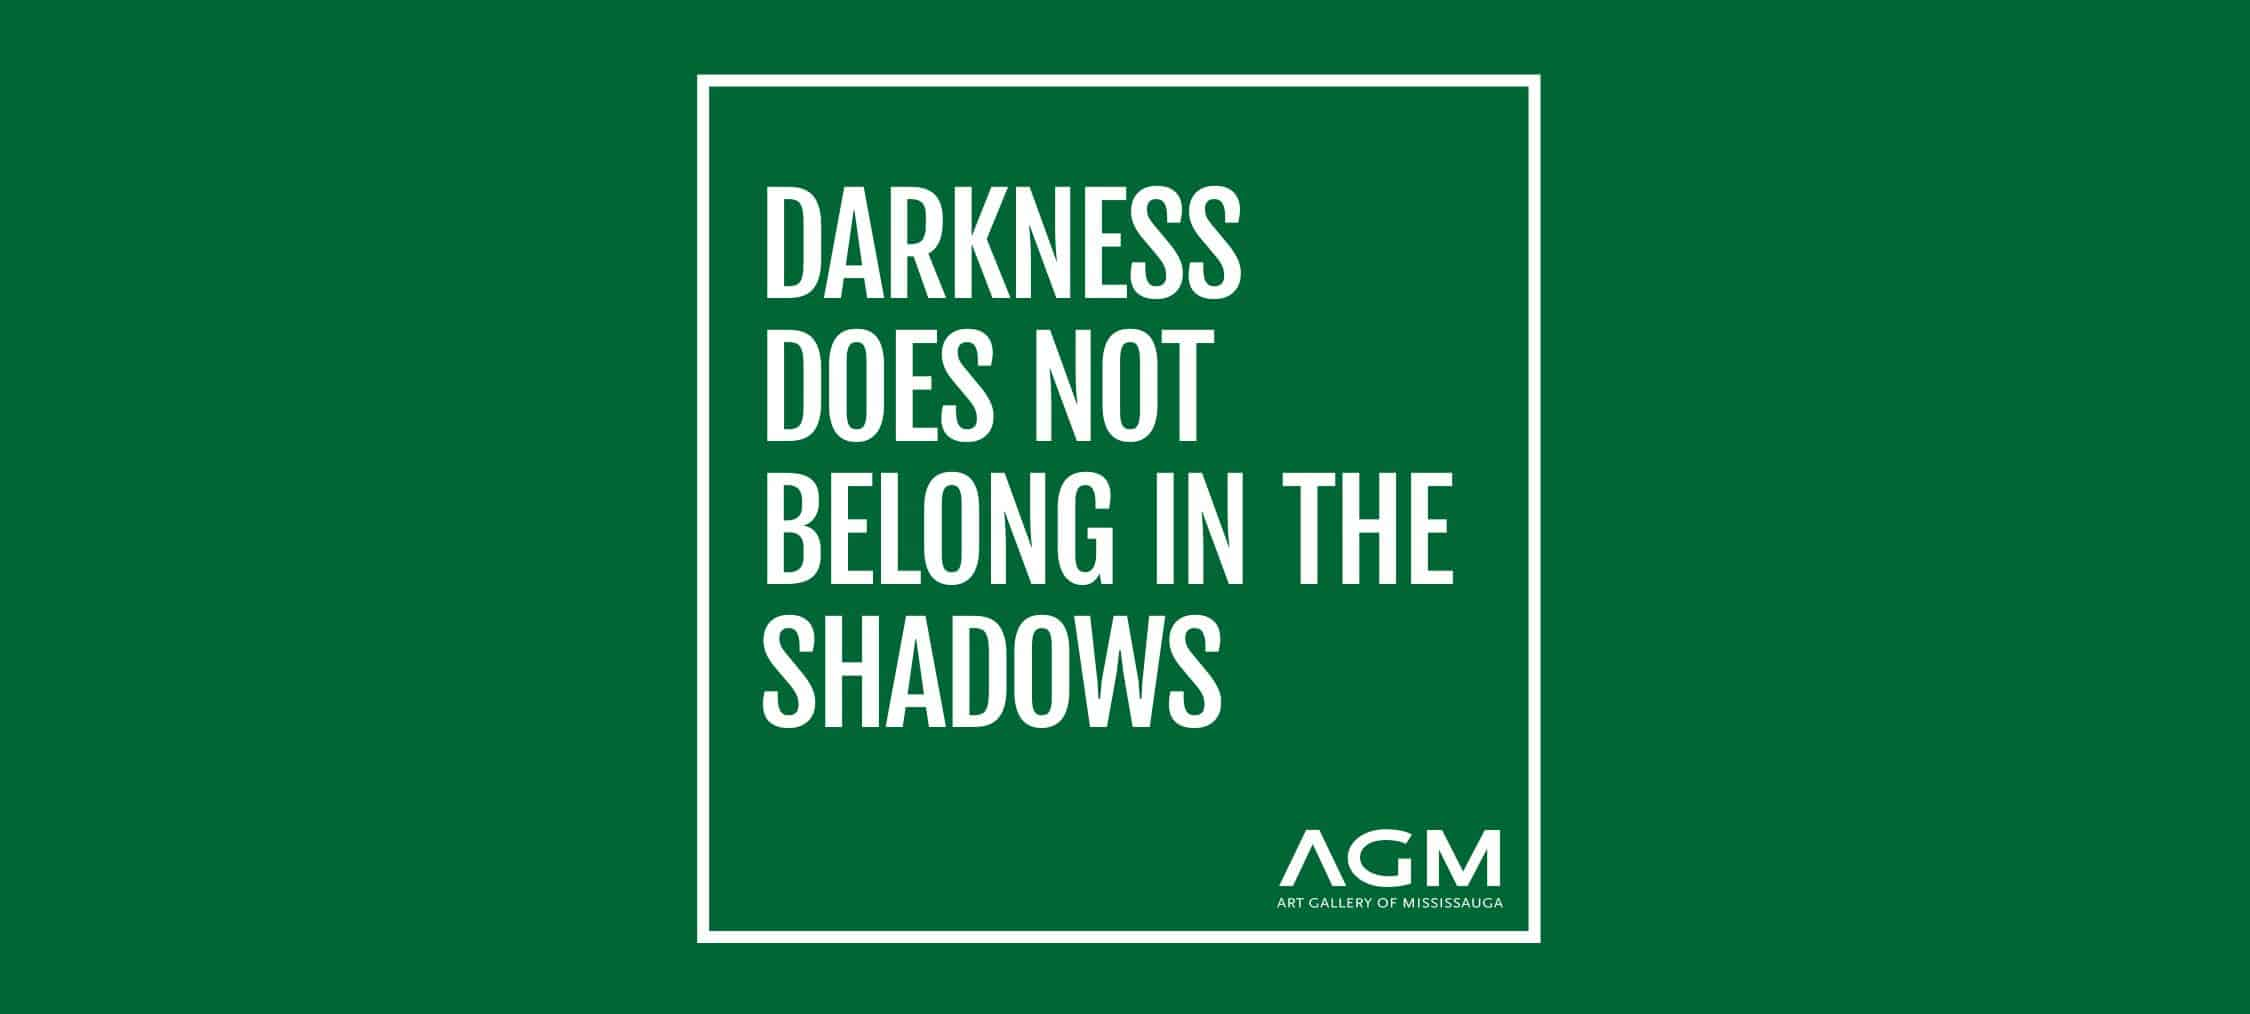 Darkness does not belong in the shadows AGM web header